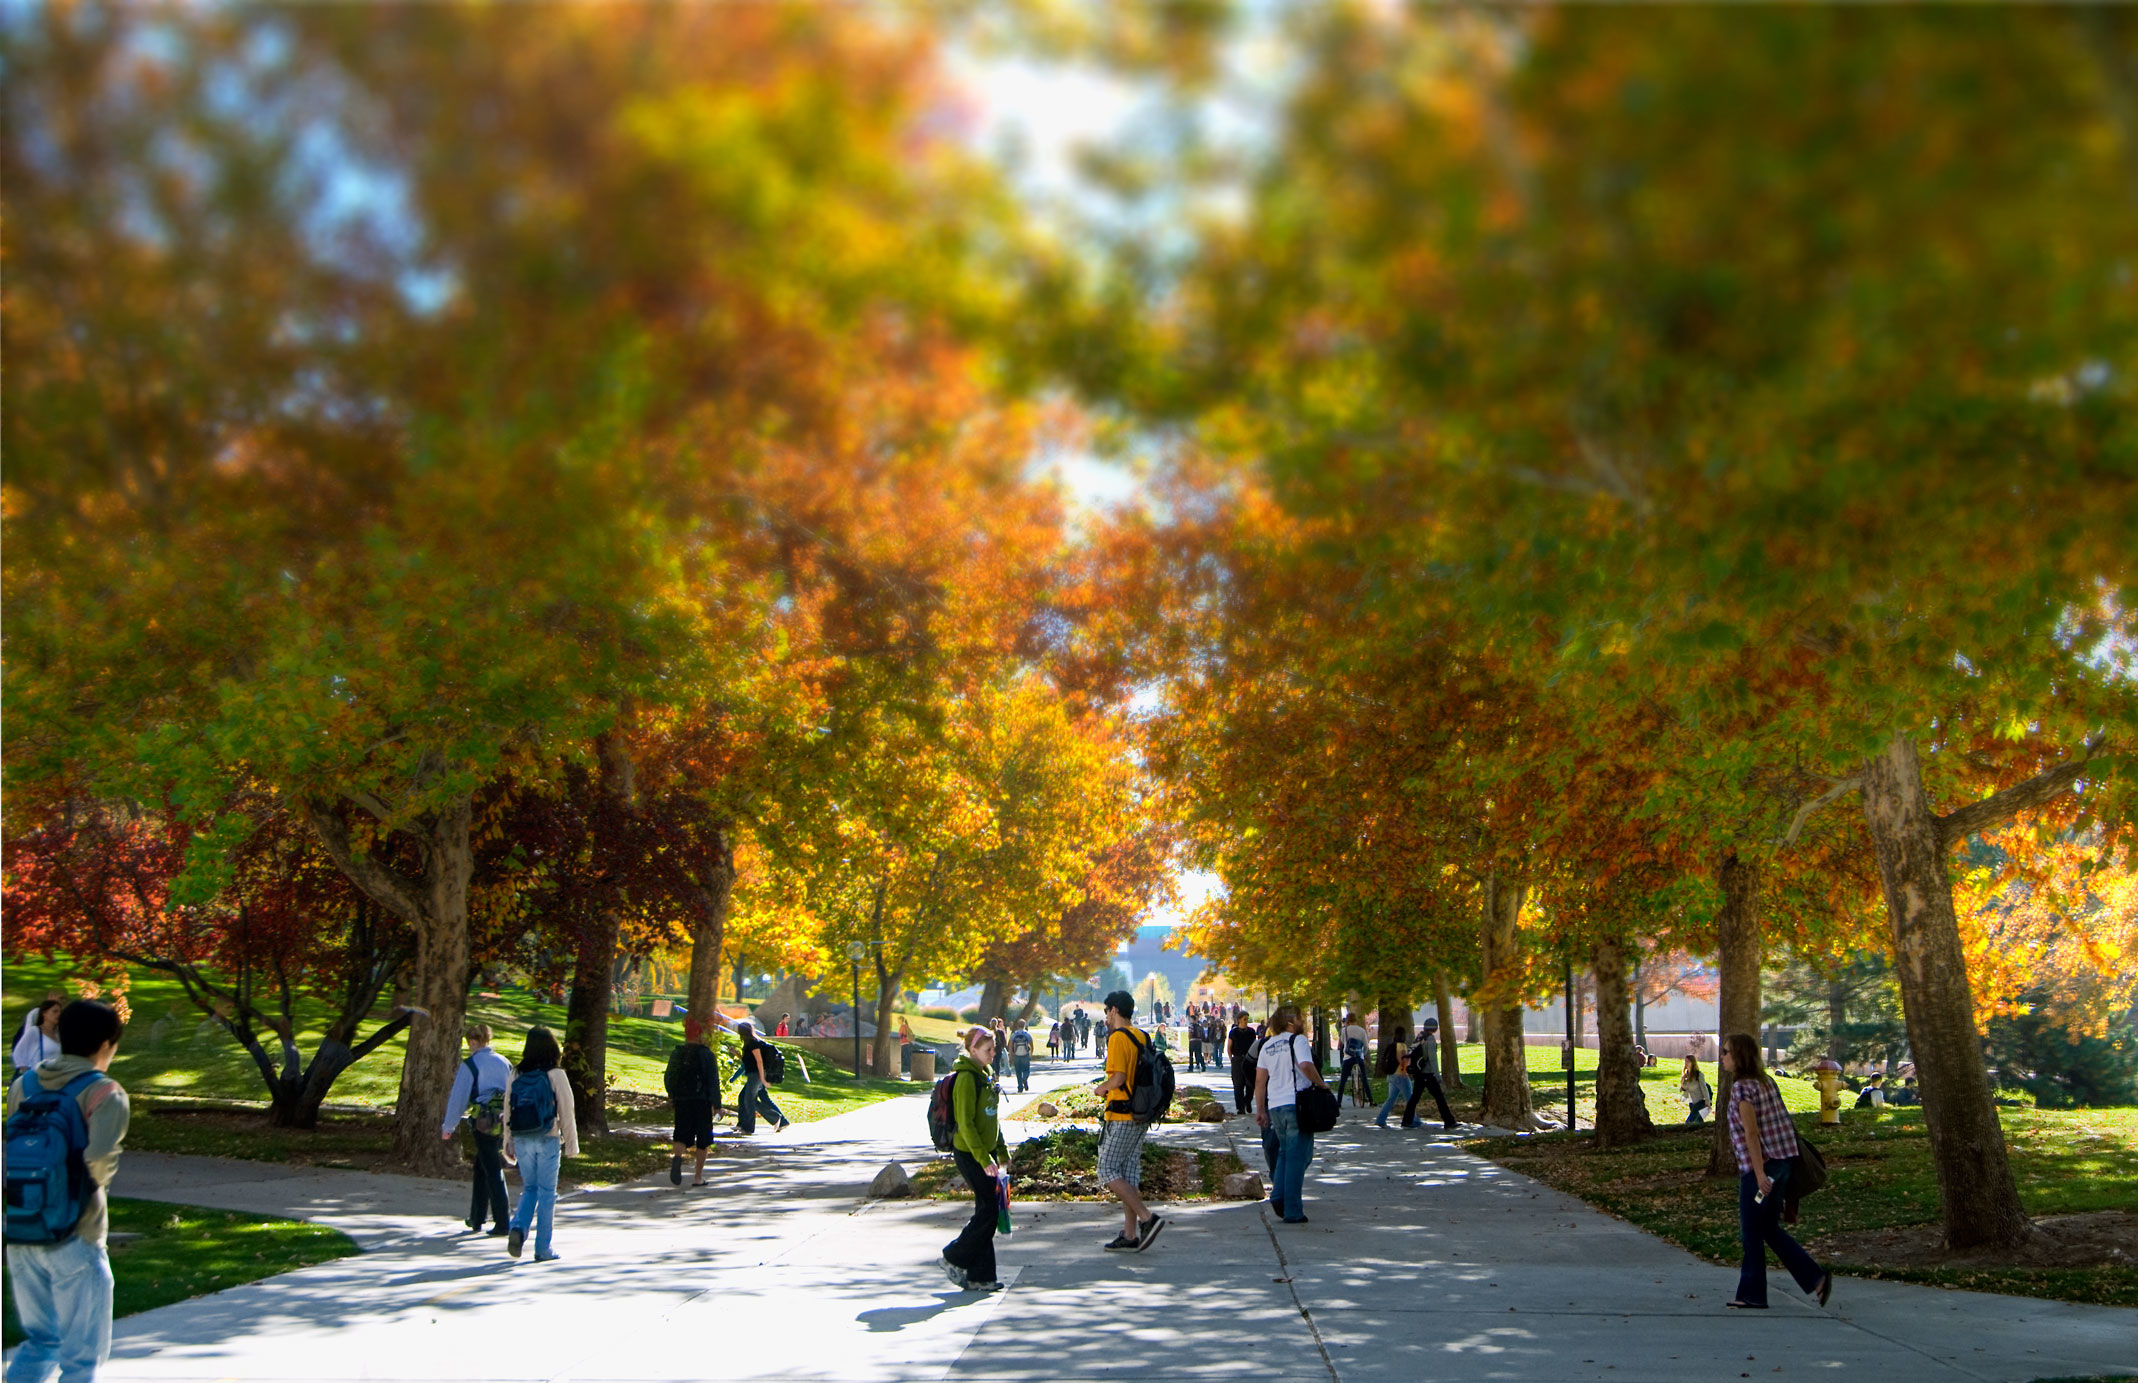 6campus_walkway-with_students